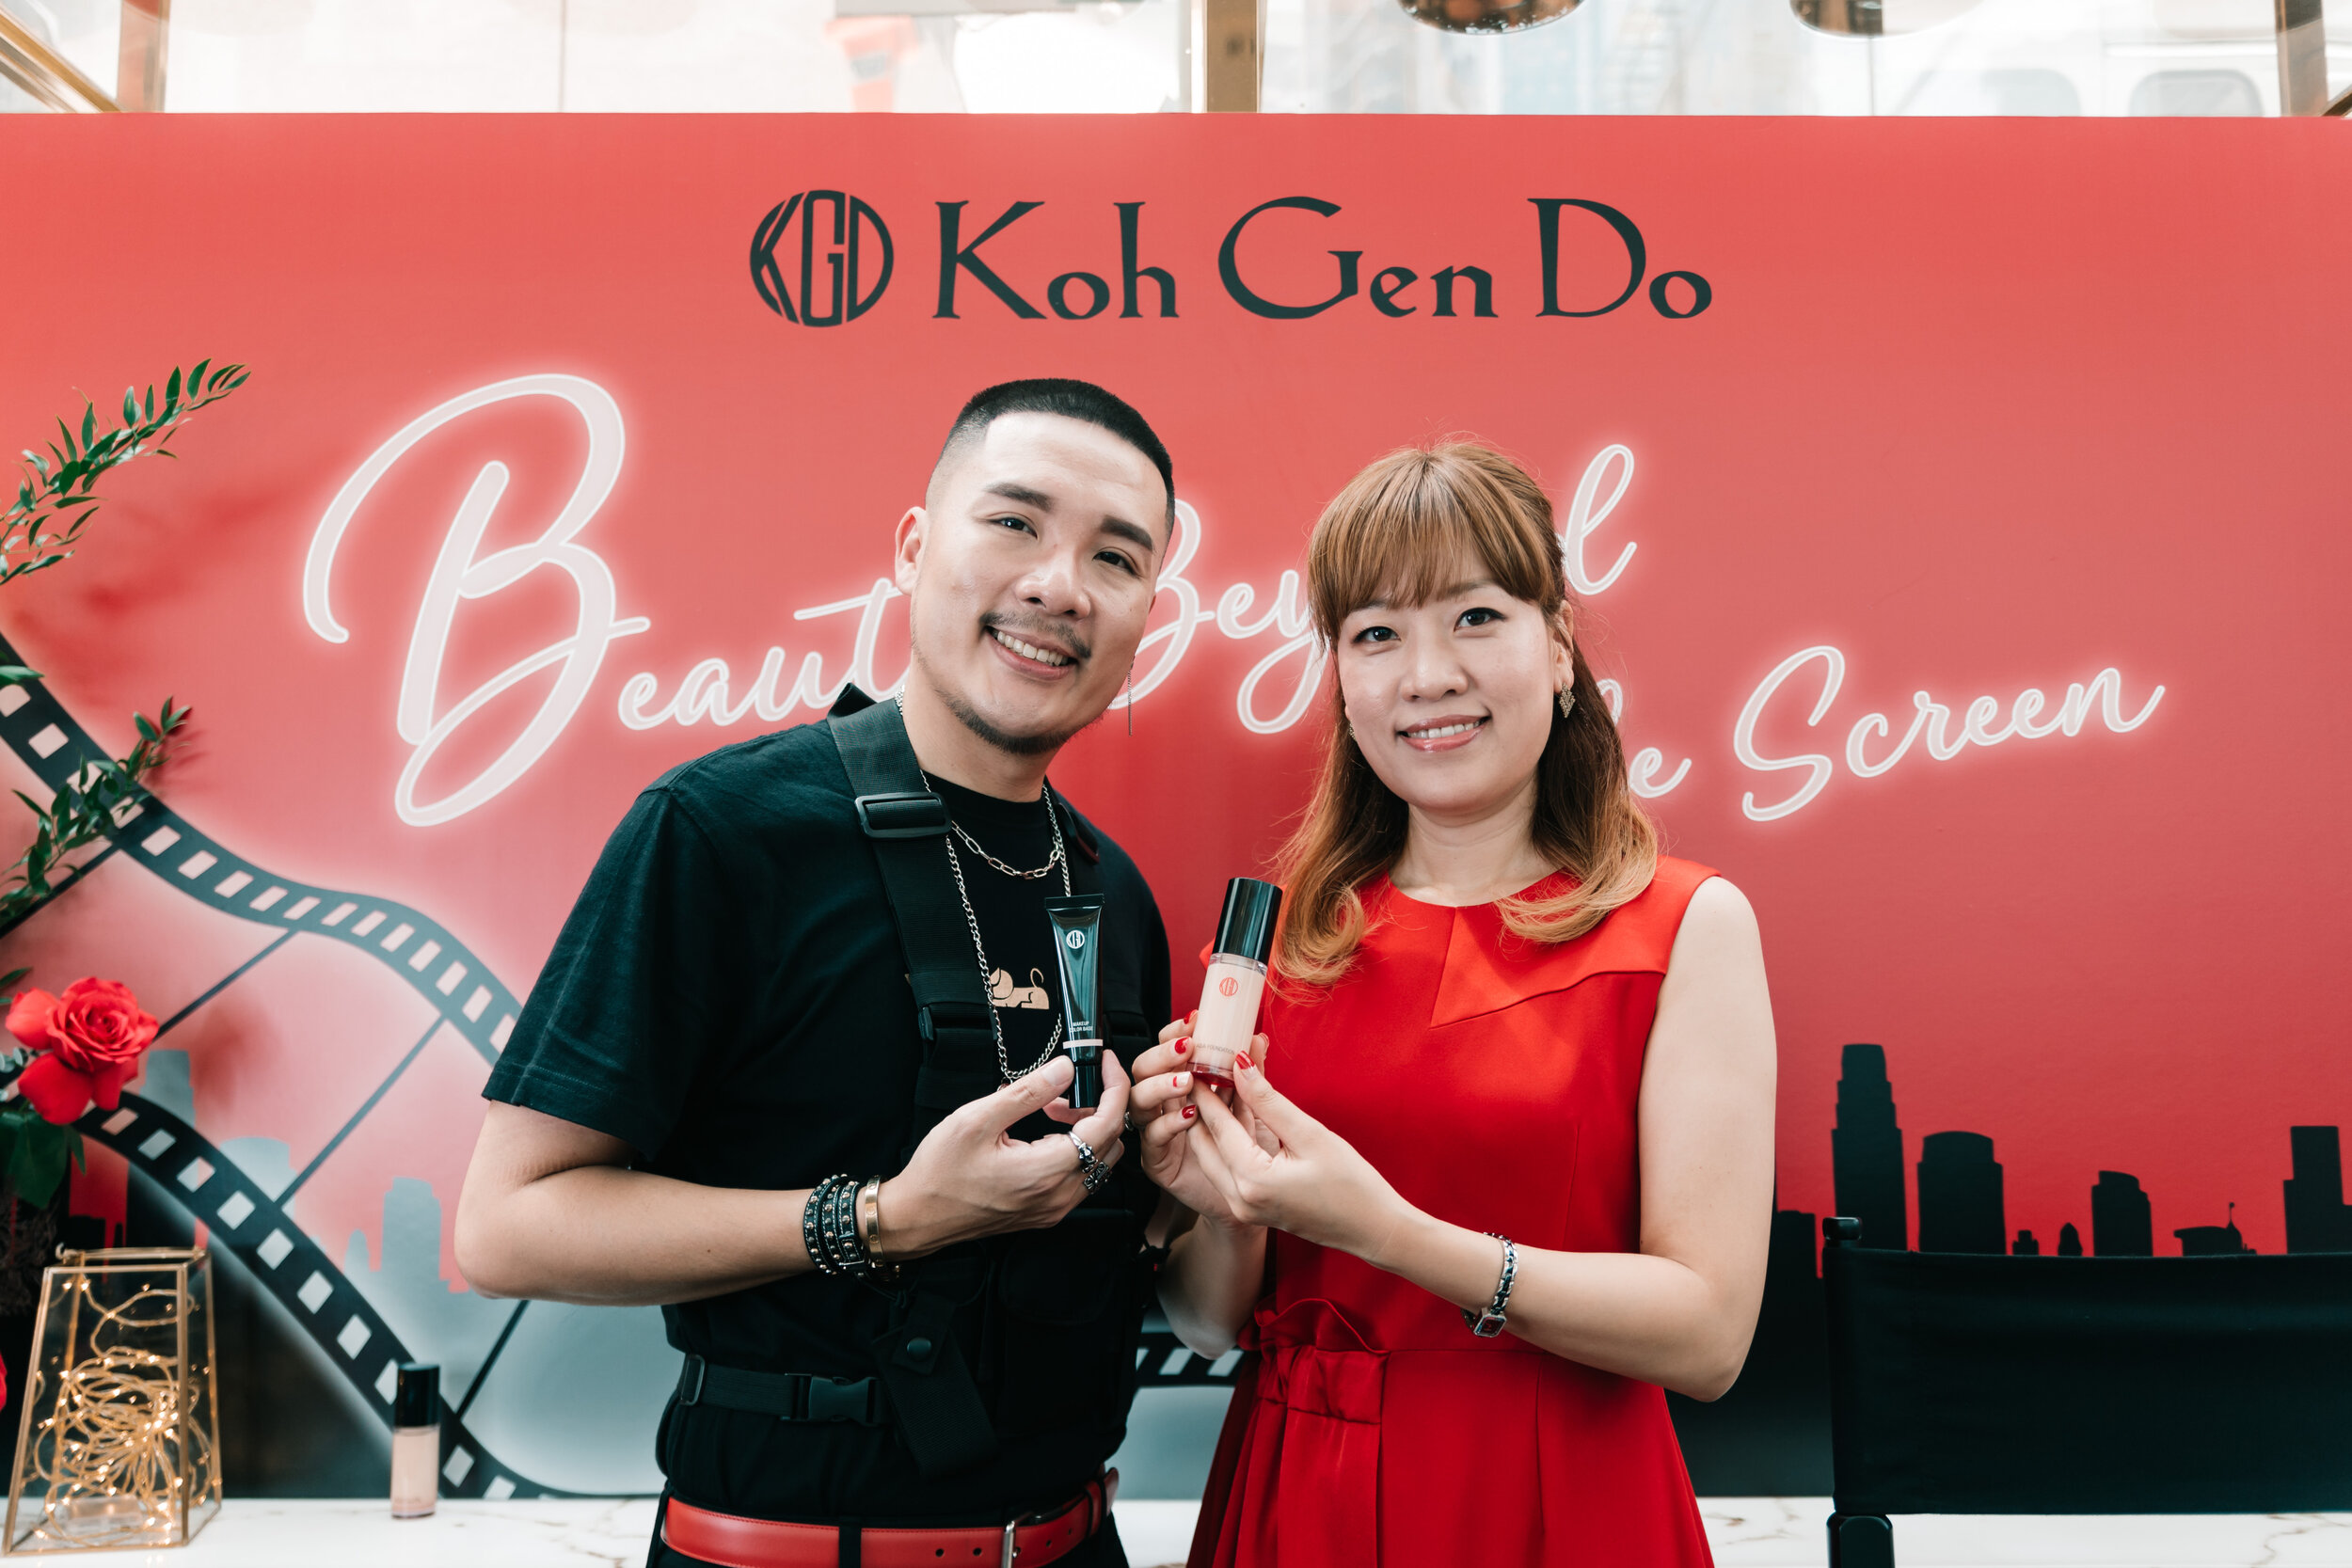 Gary Cheok, Celebrity Makeup Artist and Ms Yunje Jang, General Manager of Overseas Business Department, Koh Gen Do showcase two of Koh Gen Do's best sellers – the Aqua Foundation and the Makeup Colour Base.